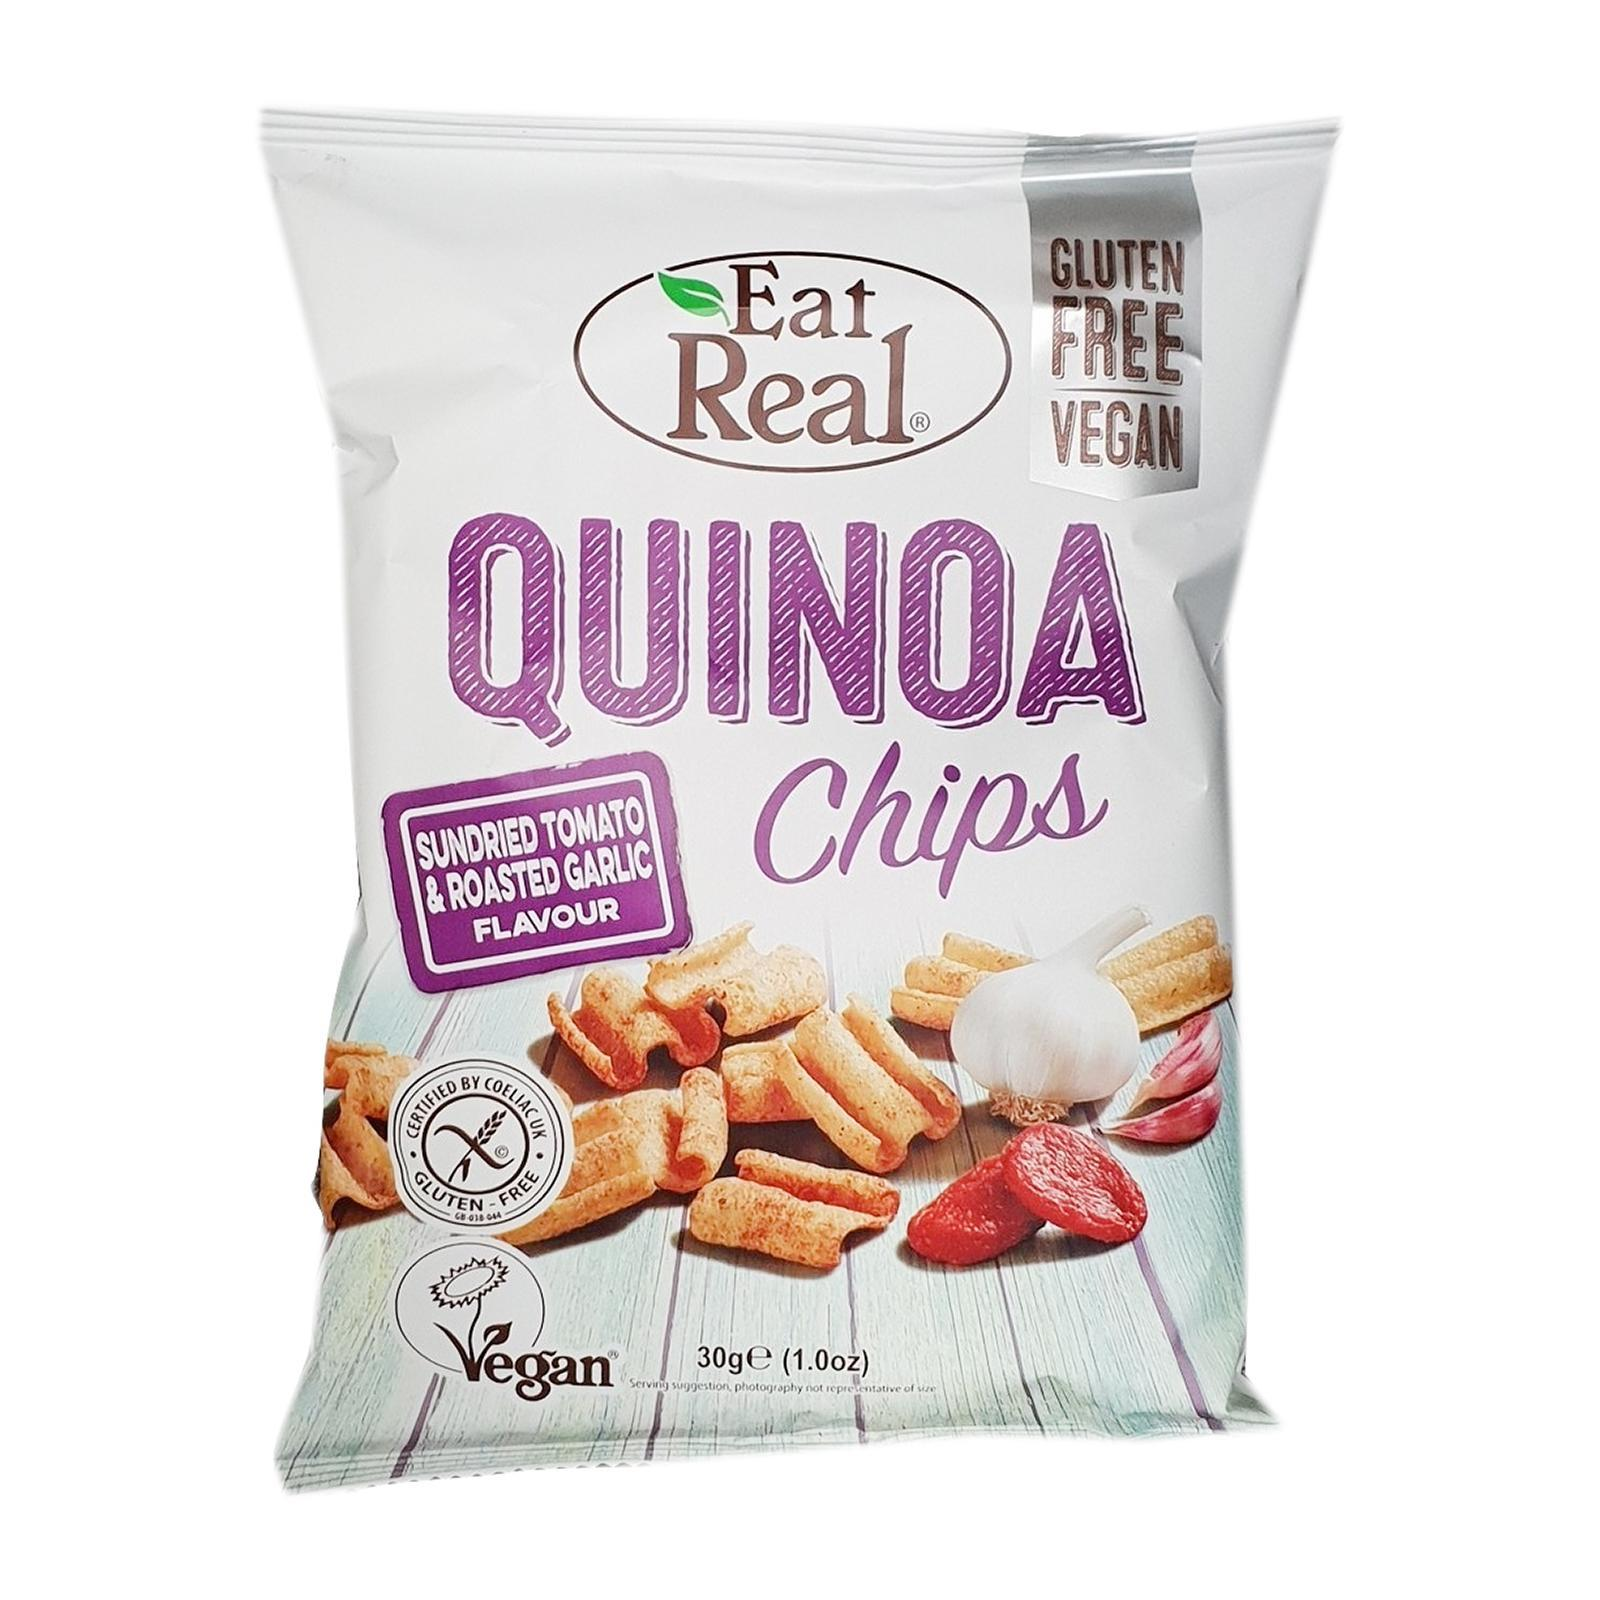 Eat Real Quinoa Chips Sundried Tomato And Roasted Garlic Flavour